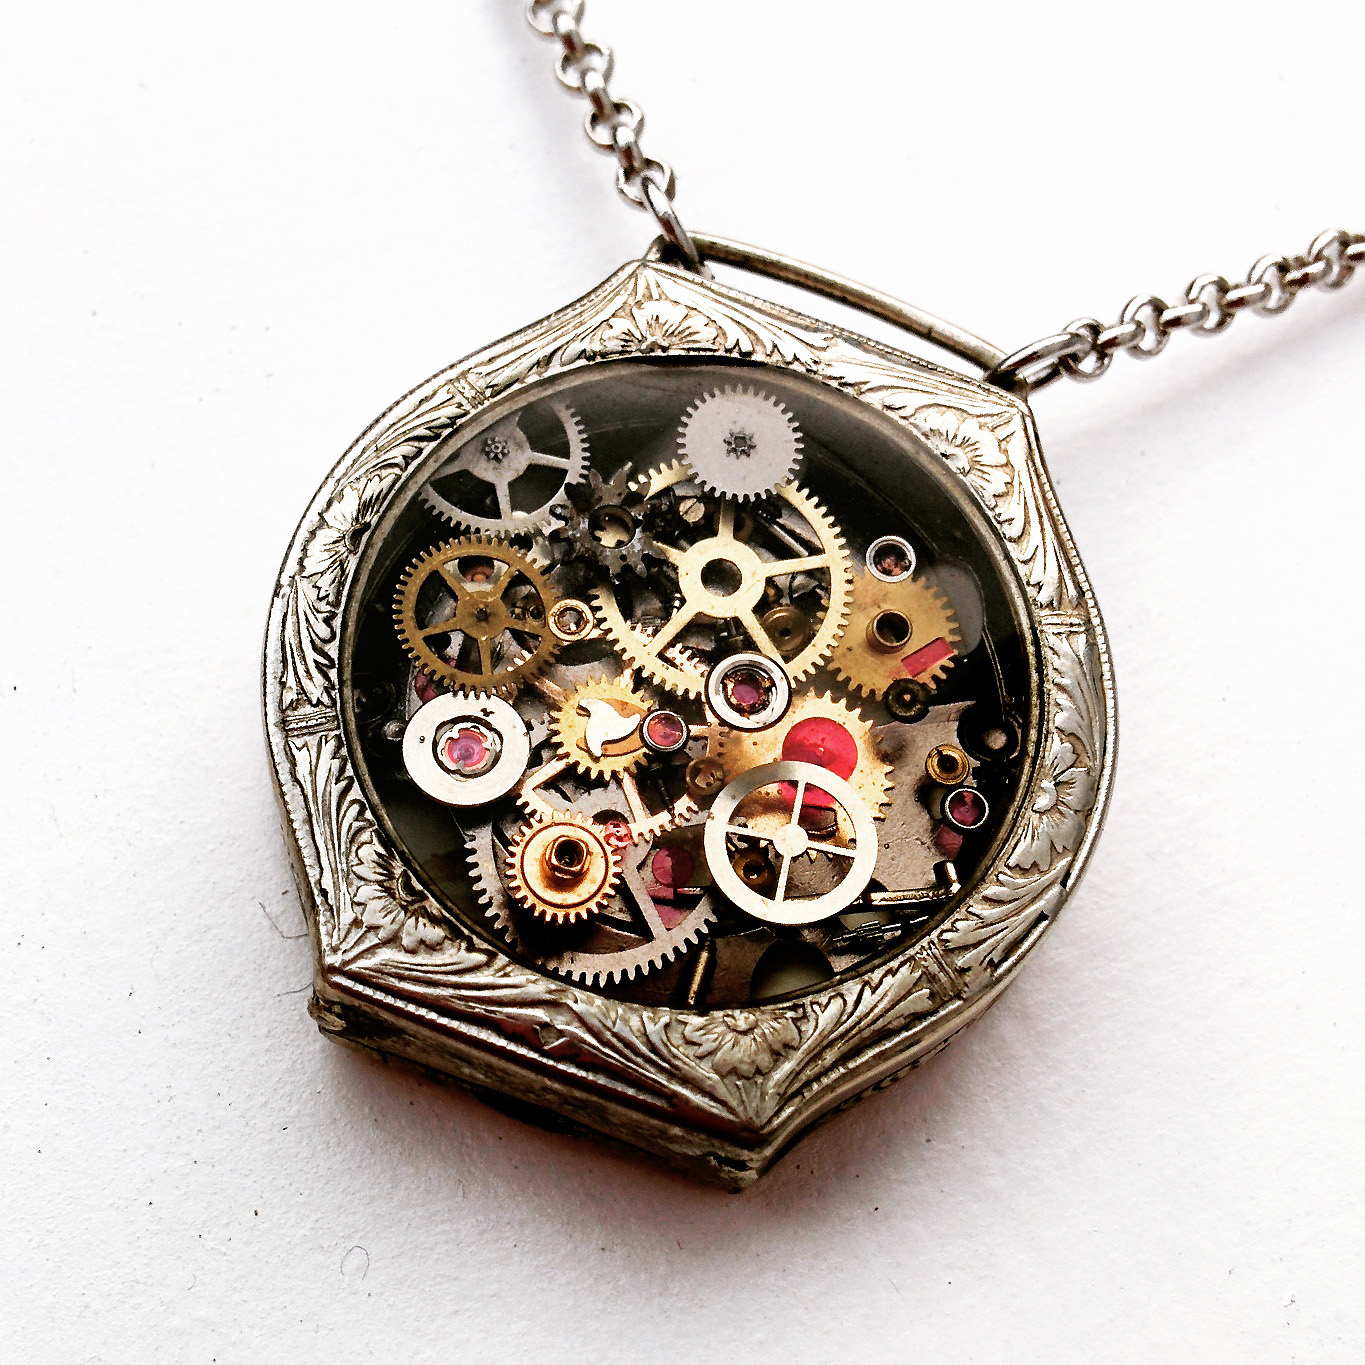 A true one of a kind piece! This antique watch case has 7layers of authentic disassembled watch parts <3